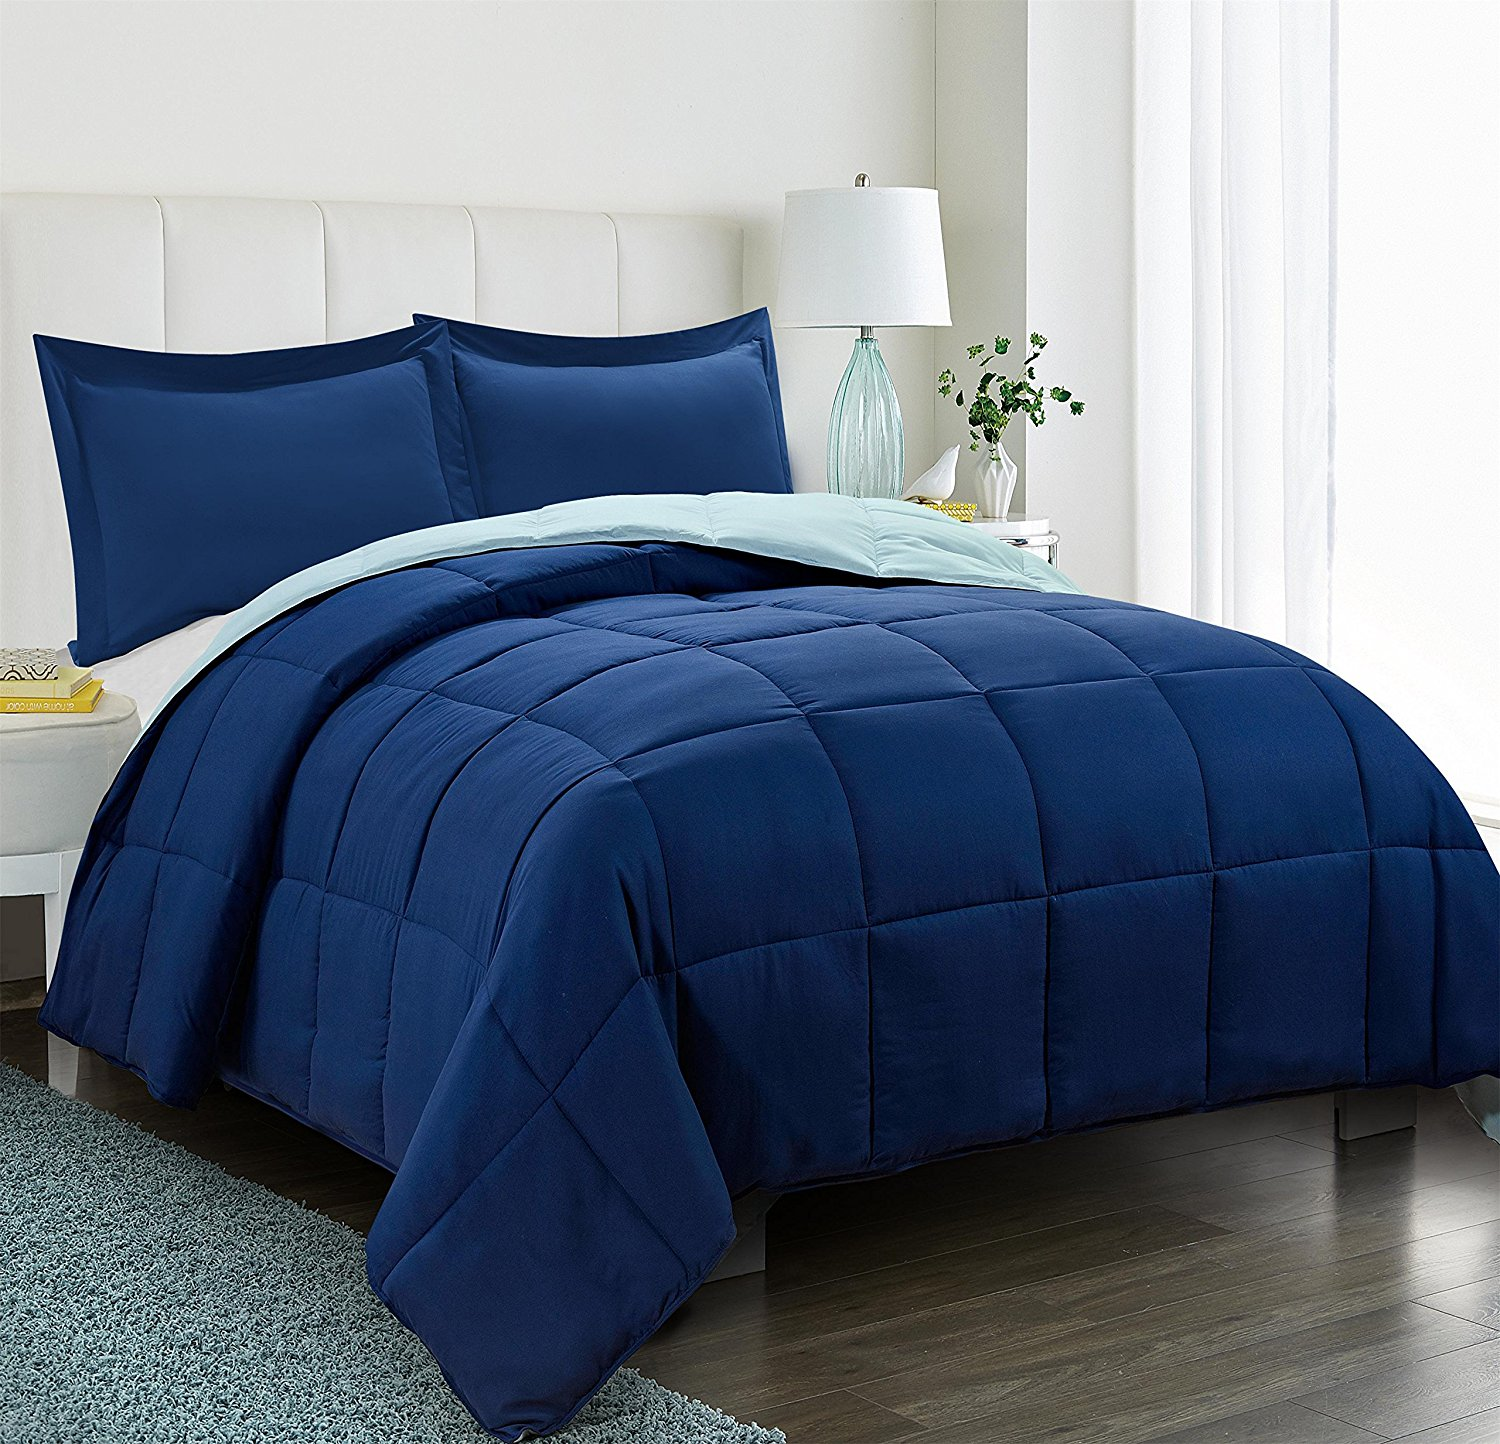 All Season Down Alternative Comforter Set 2pc Box Stitched Reversible Comforter With One Sham Quilted Duvet Insert With Corner Tabs Hypoallergenic Supersoft Wrinkle Resistant Navy Twin Size Walmart Com Walmart Com